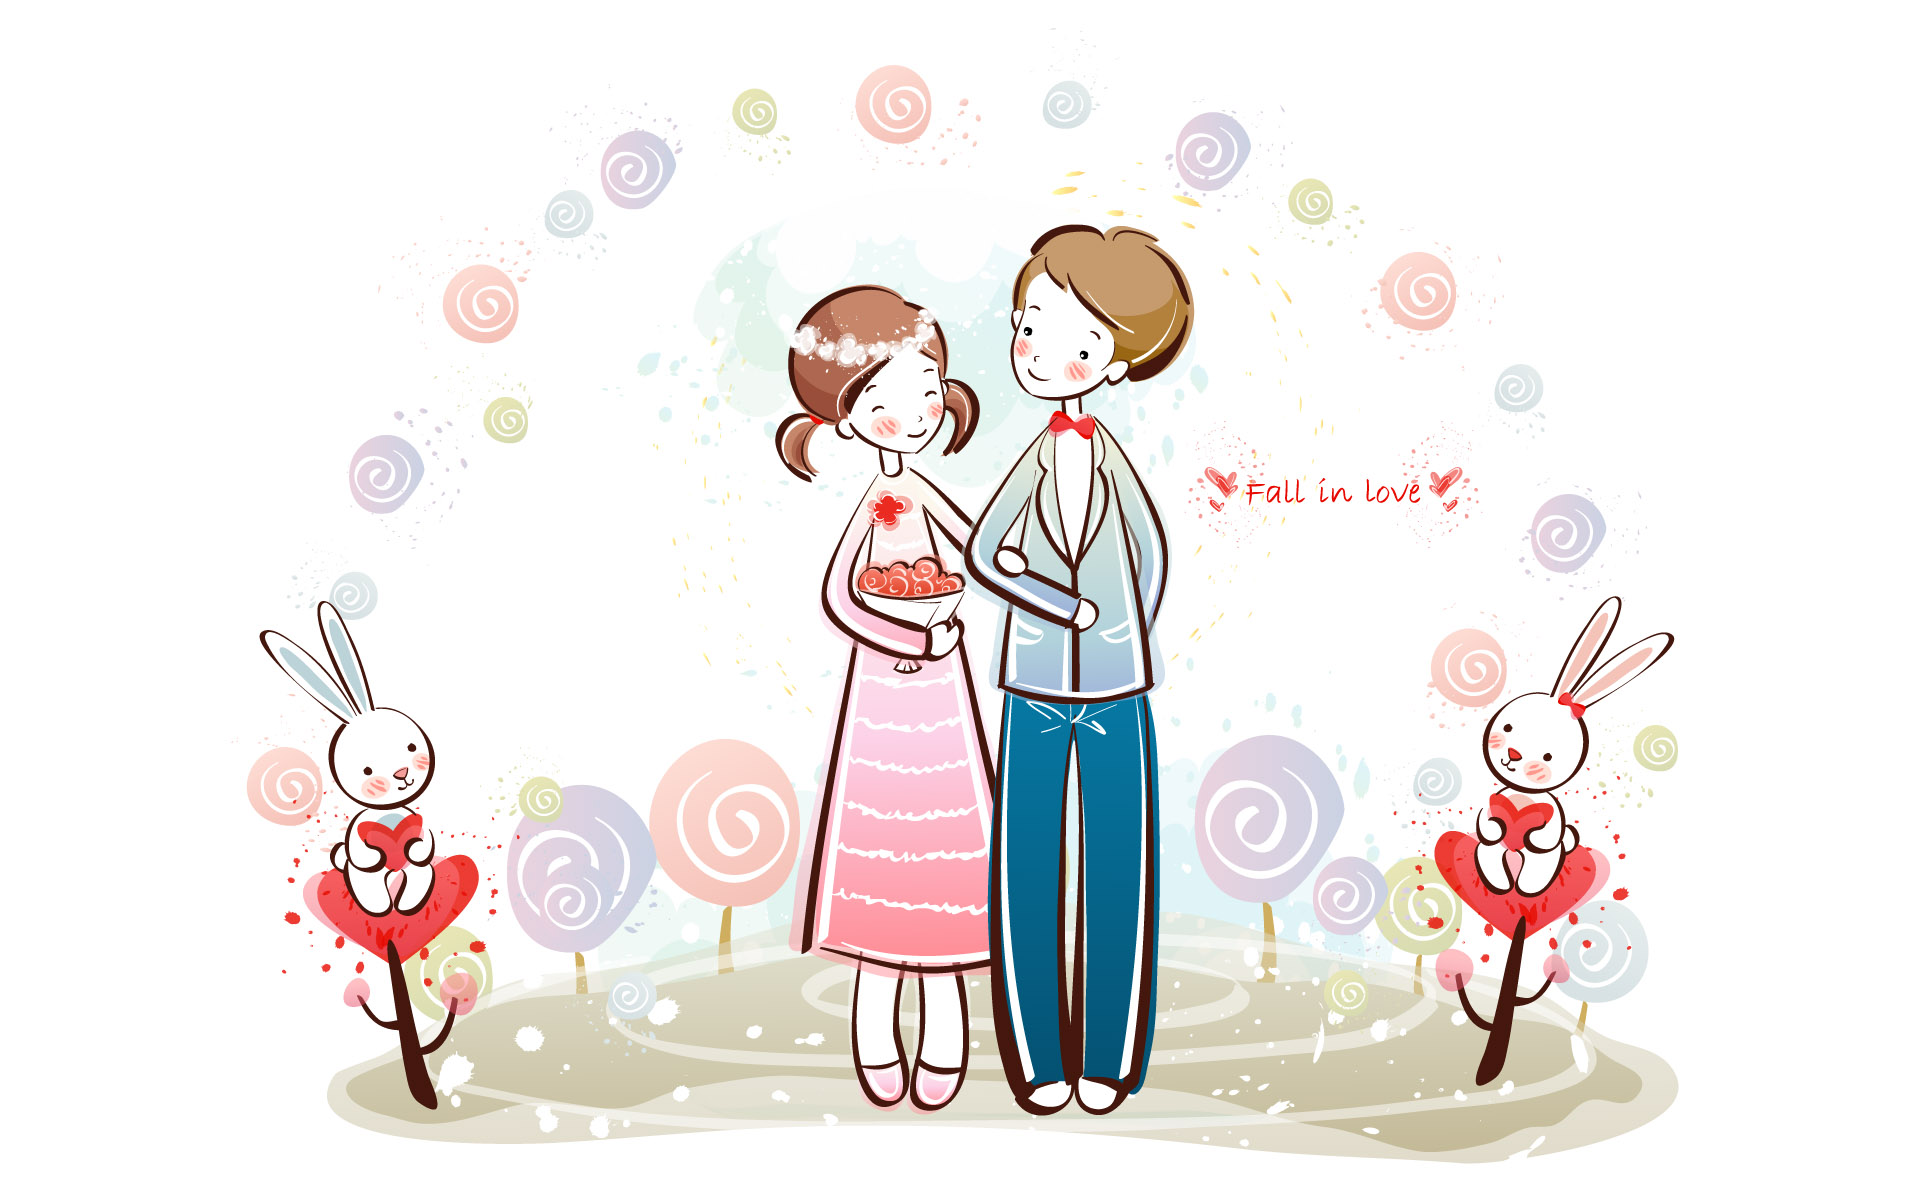 cute Love couple Hd Wallpaper Animated : Diantara Kita Bercinta